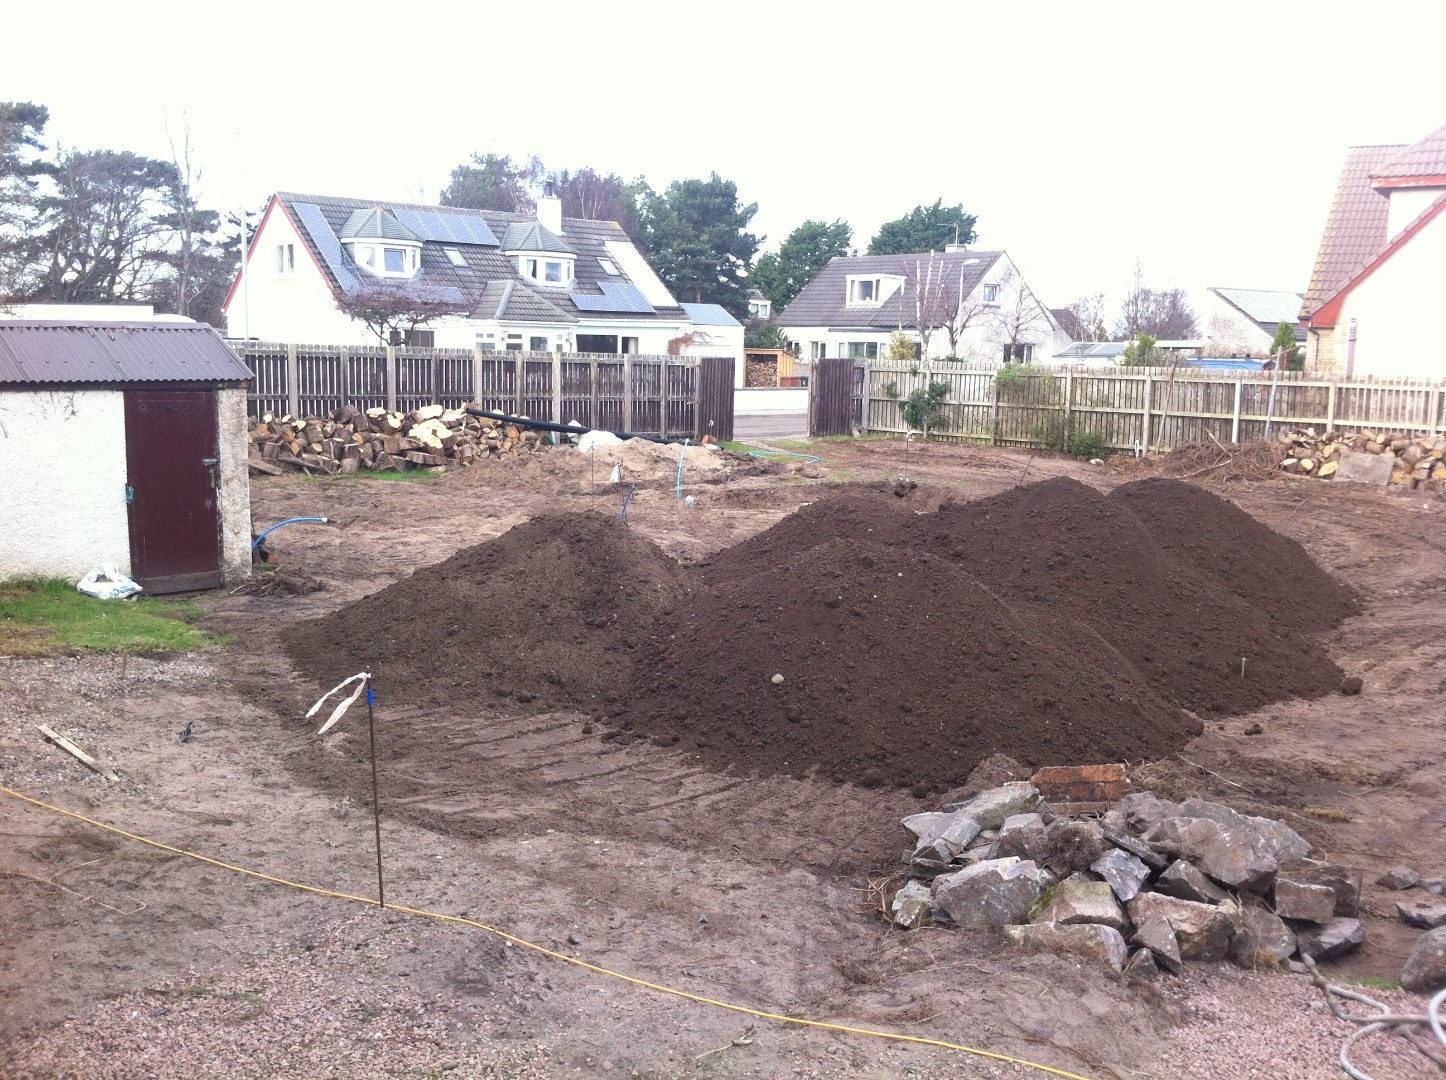 Forty tonnes of topsoil